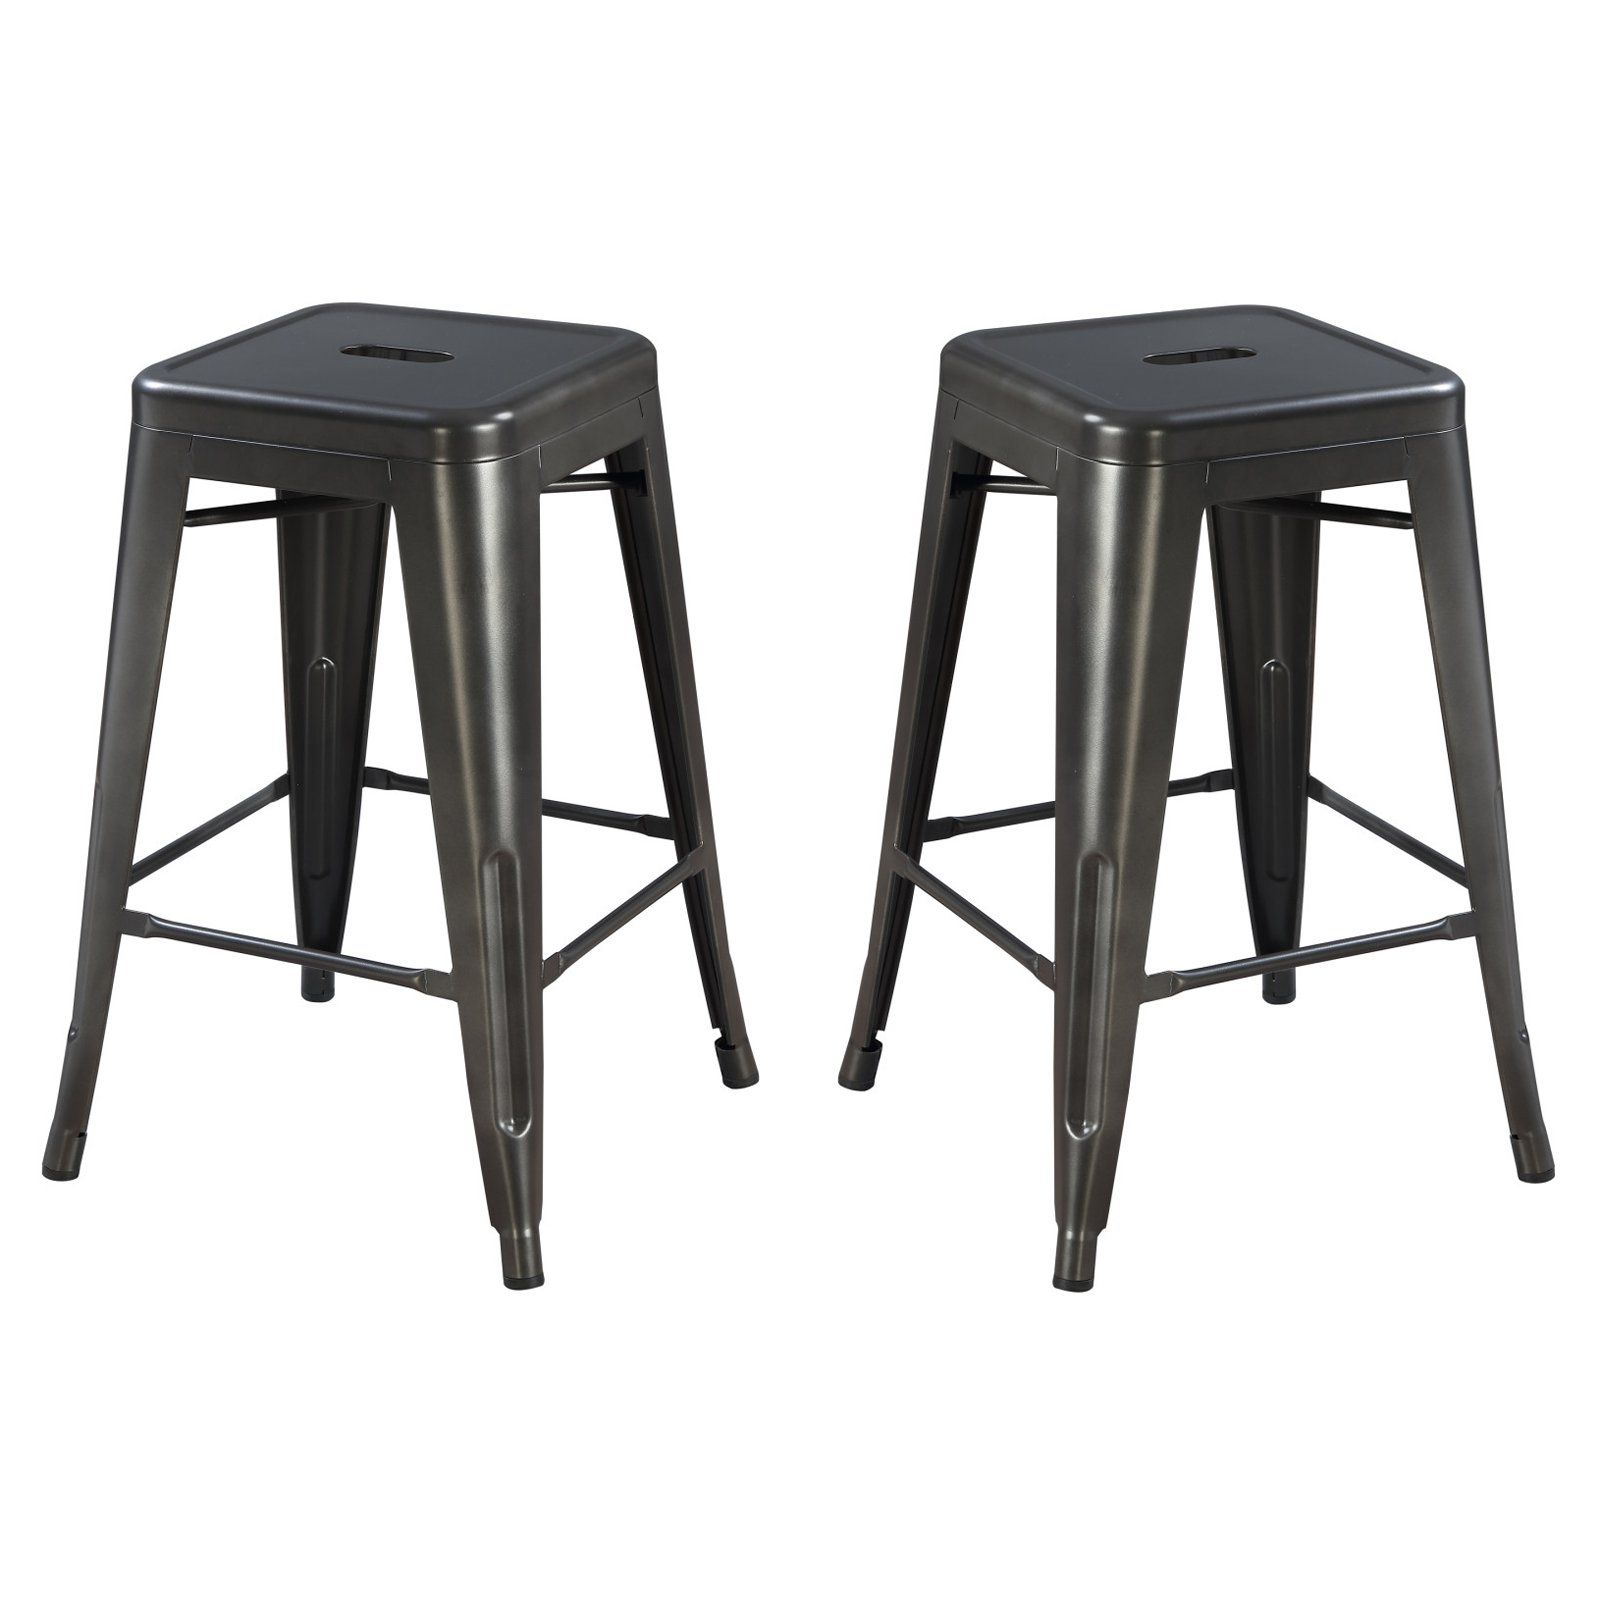 Emerald Home Dakota Ii 24 In Industrial Backless Counter Stool Set Of 2 Backless Bar Stools Metal Counter Stools Bar Stools